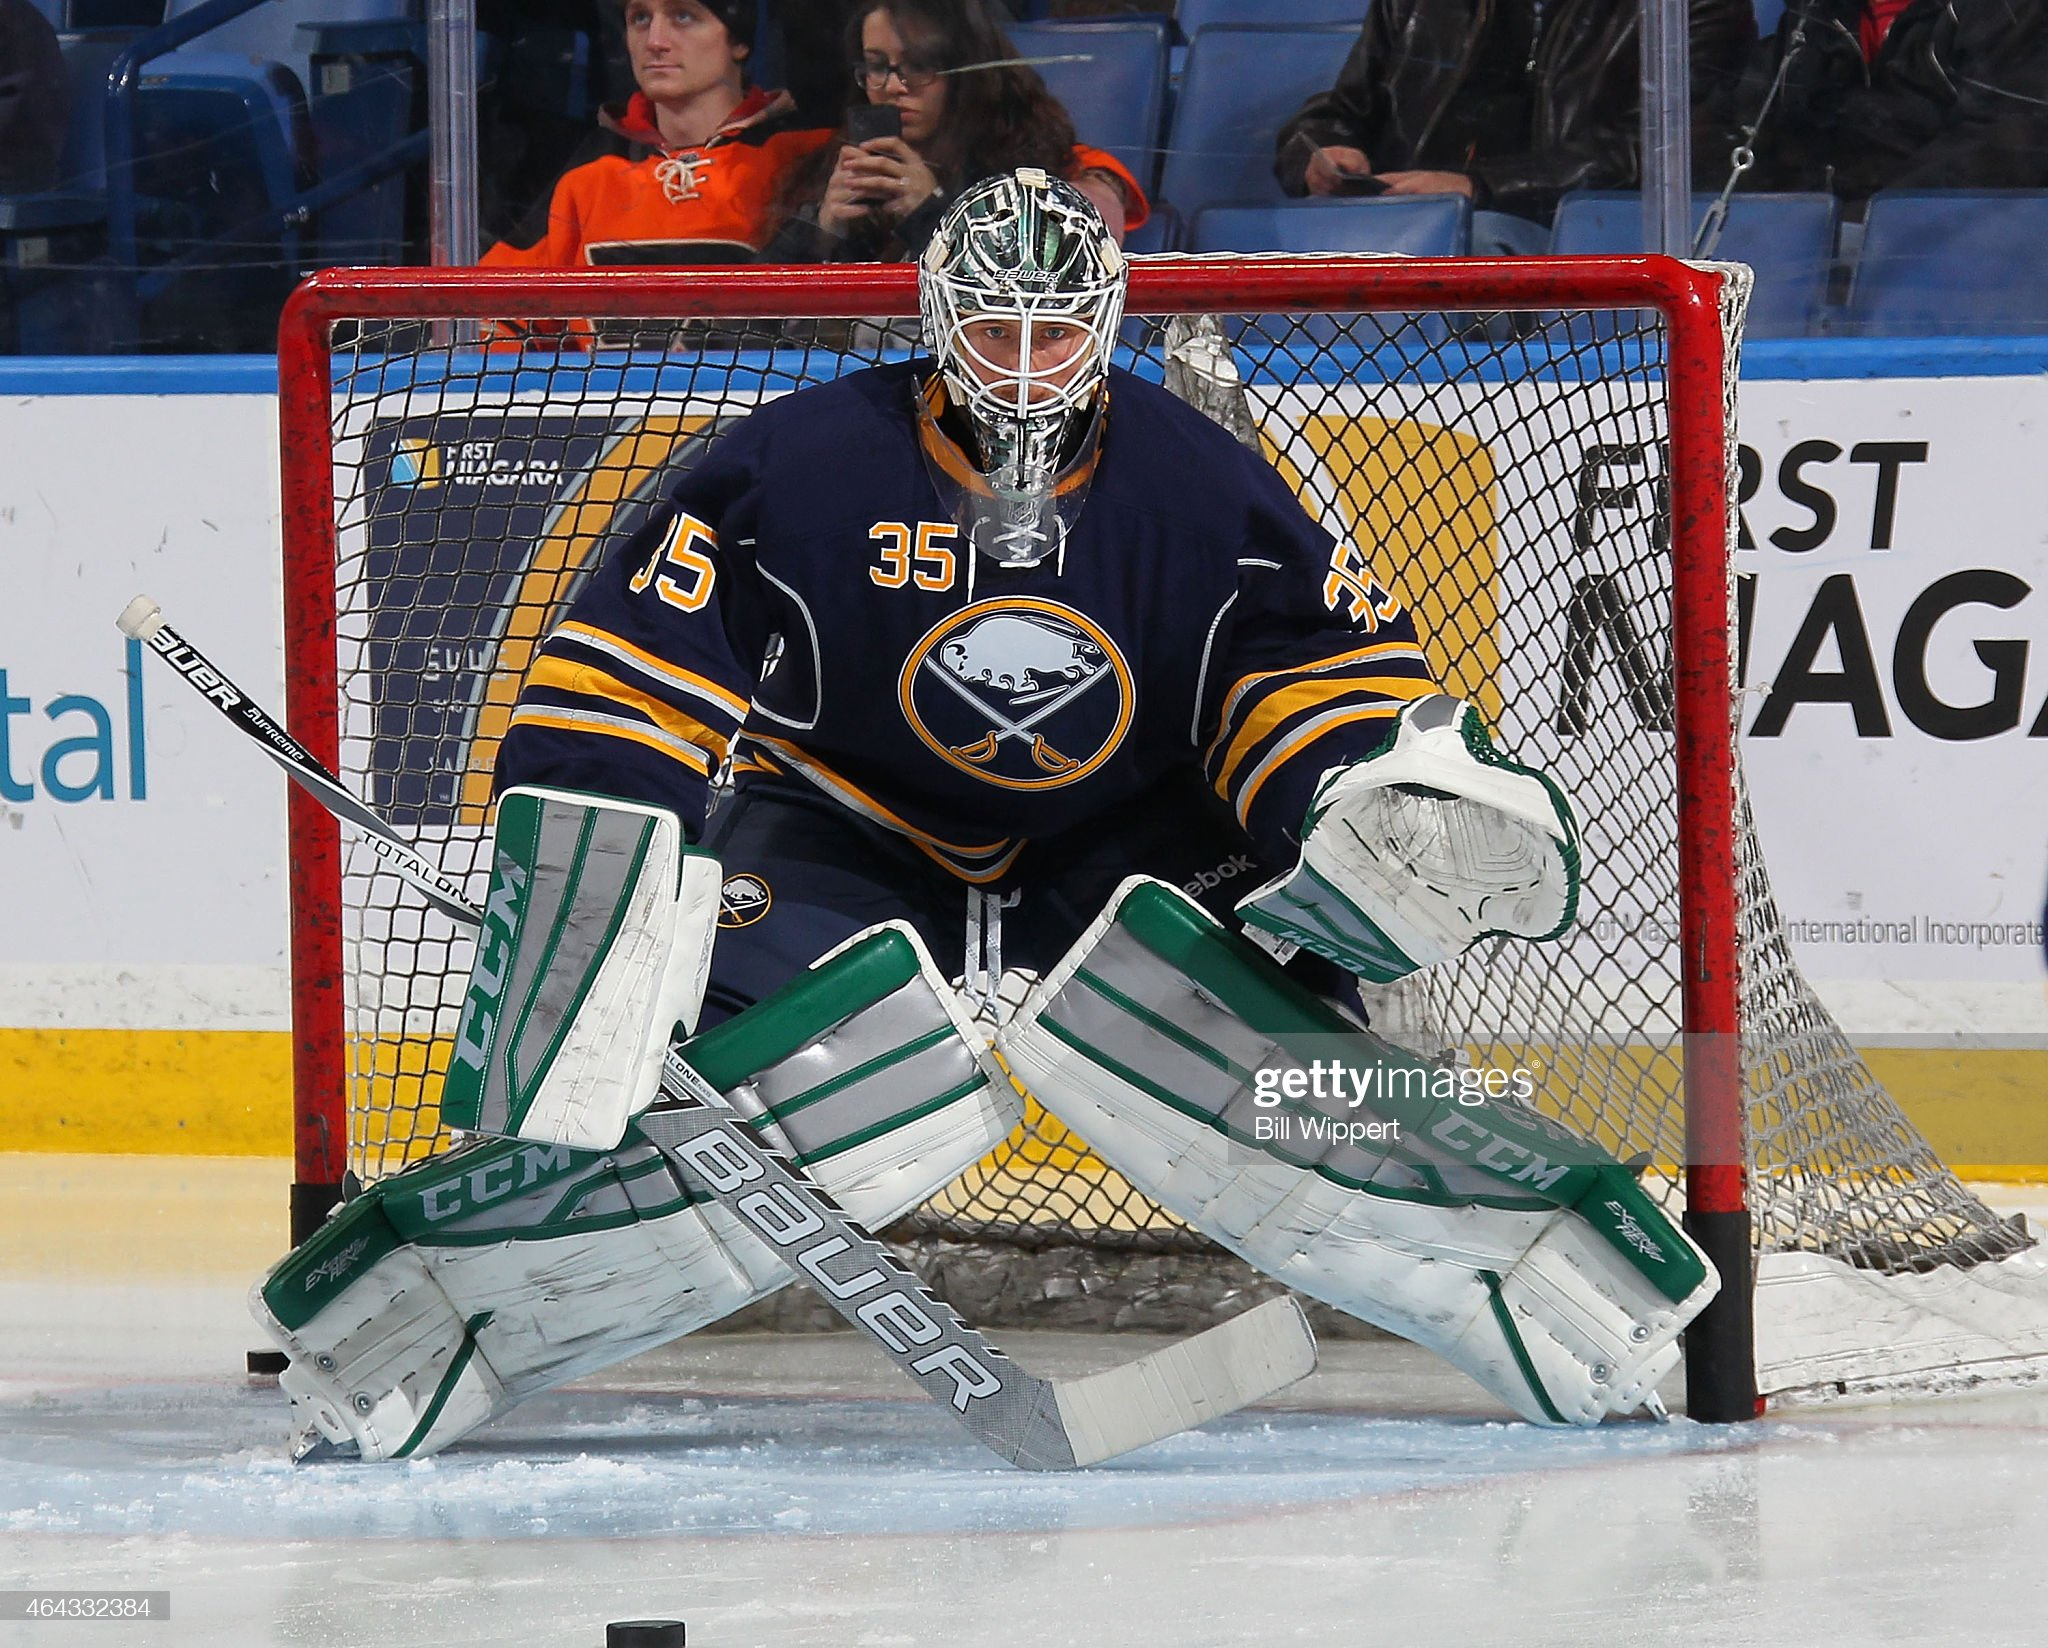 anders-lindback-of-the-buffalo-sabres-wa